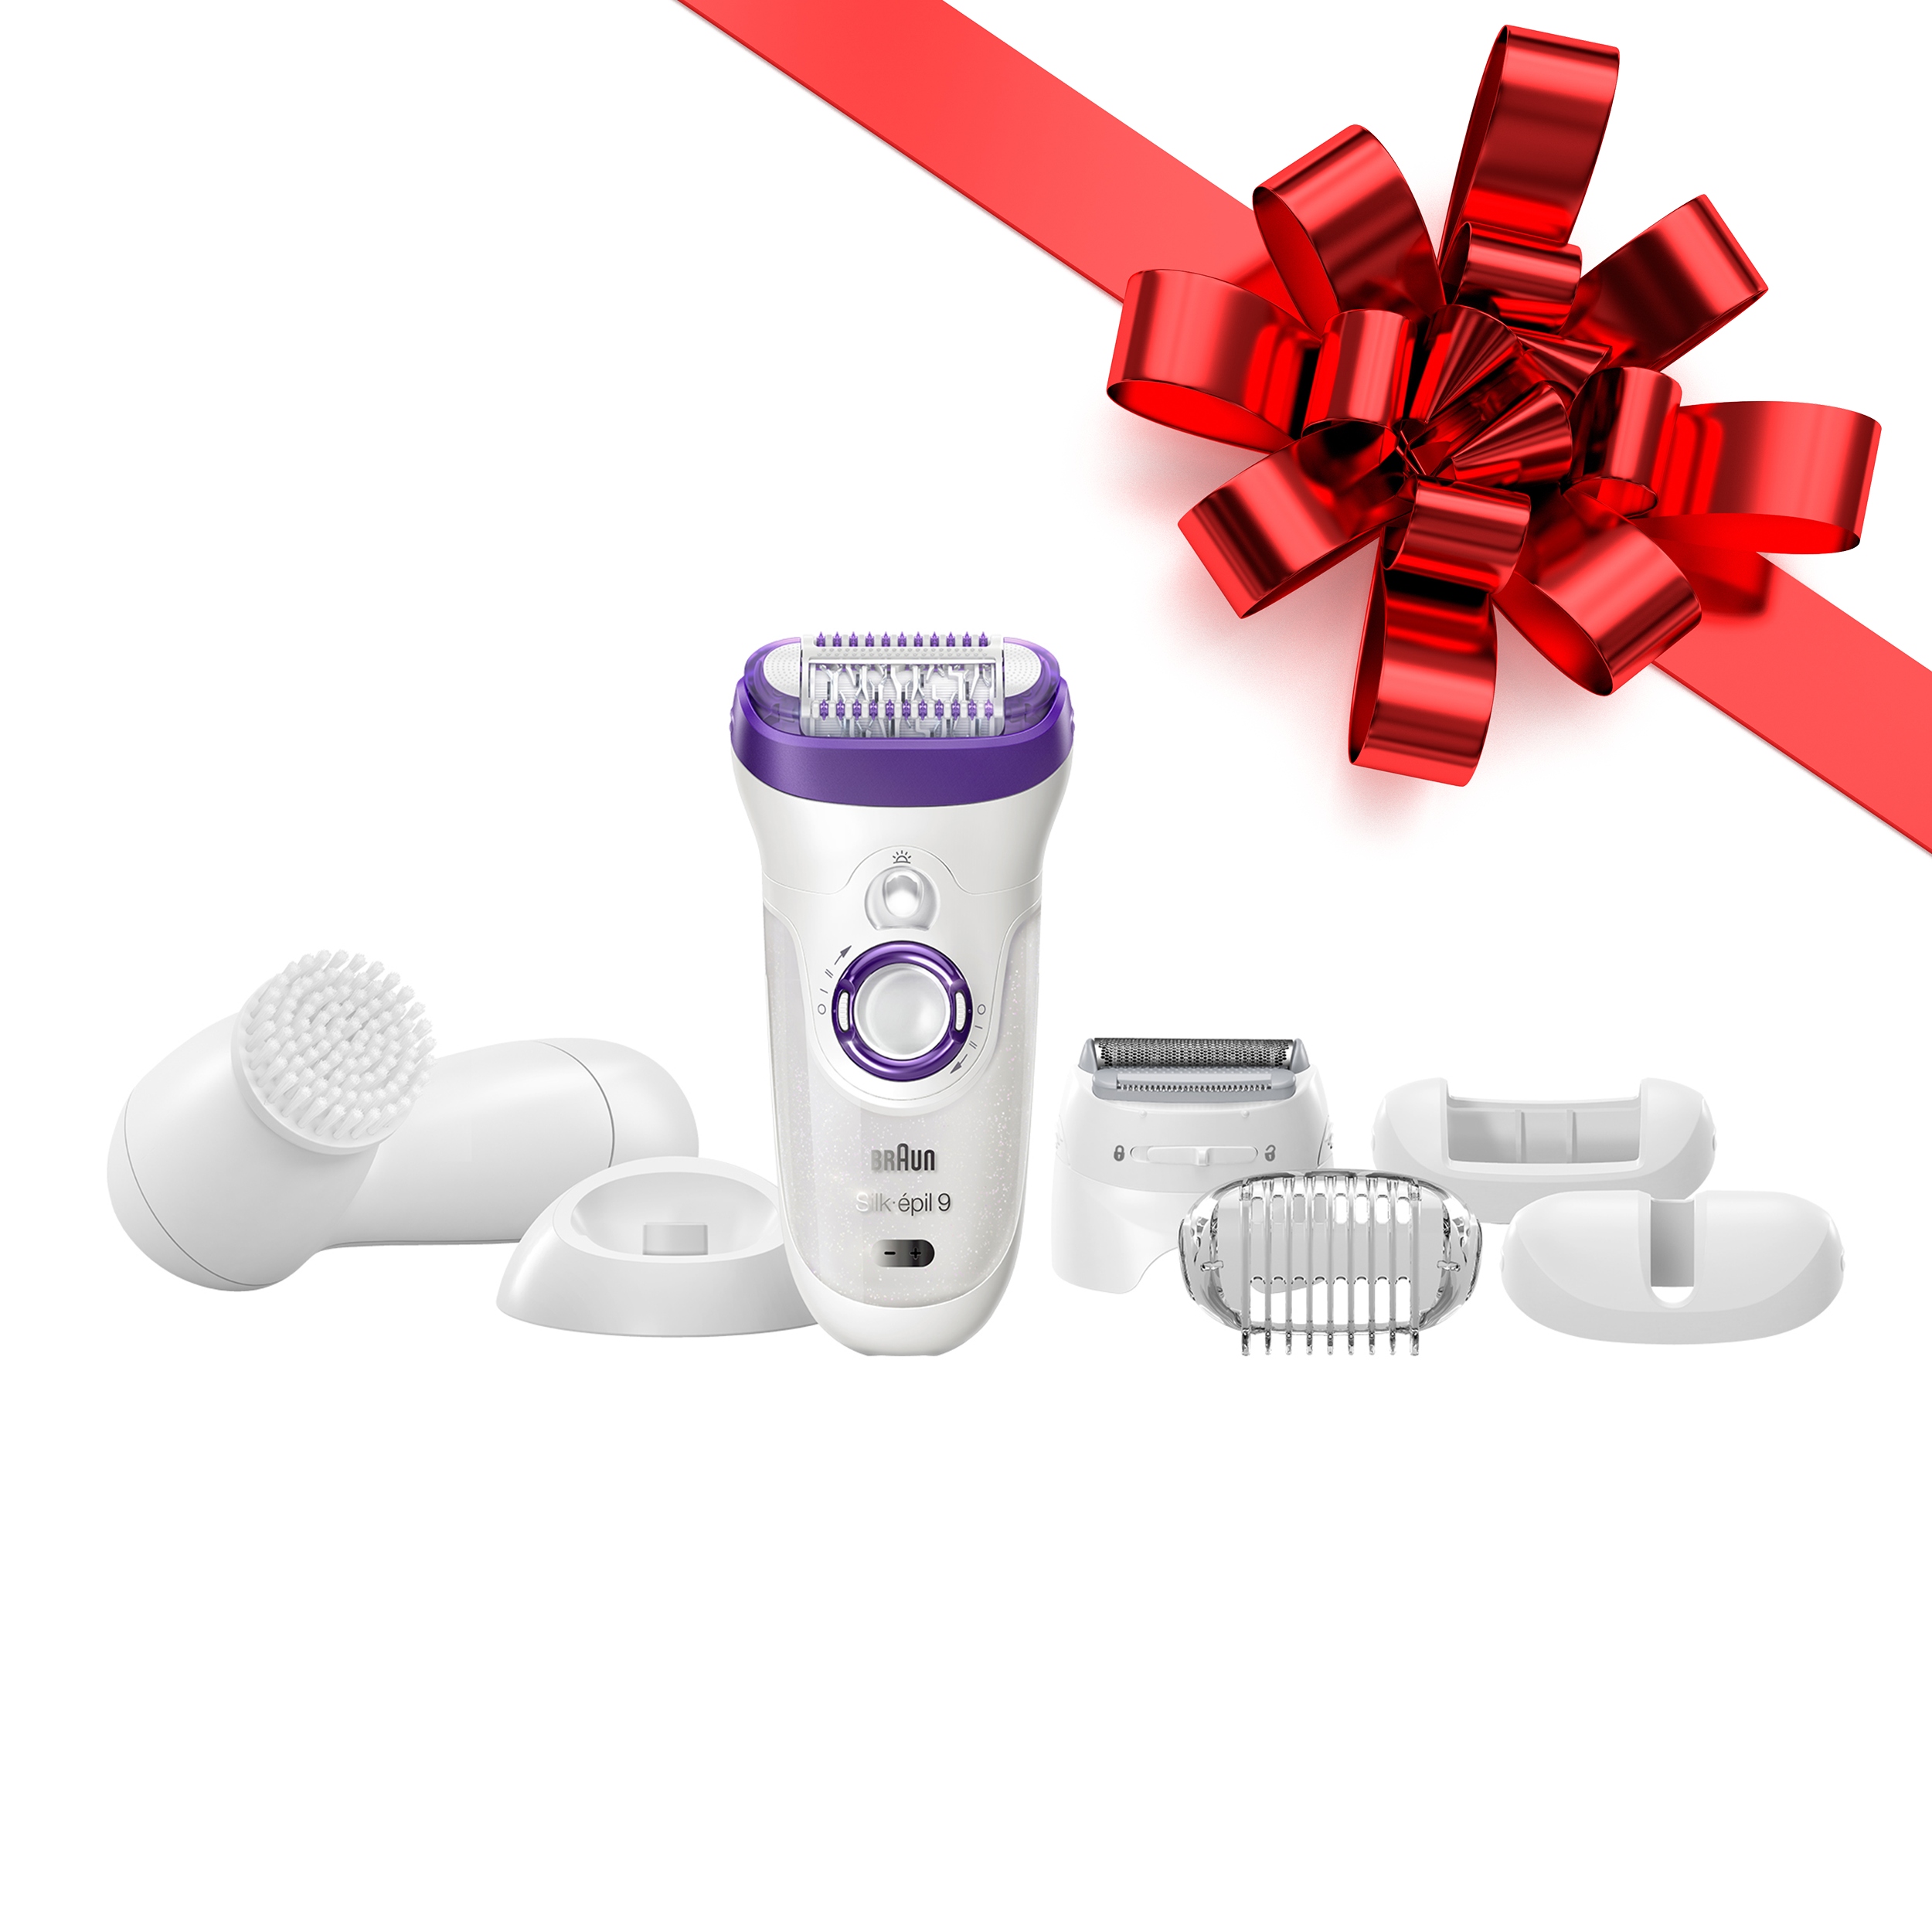 Braun Silk-epil 9 9-579 ($40 in Rebates Available) - Wet & Dry Cordless Epilator / Epilation + 7 extras